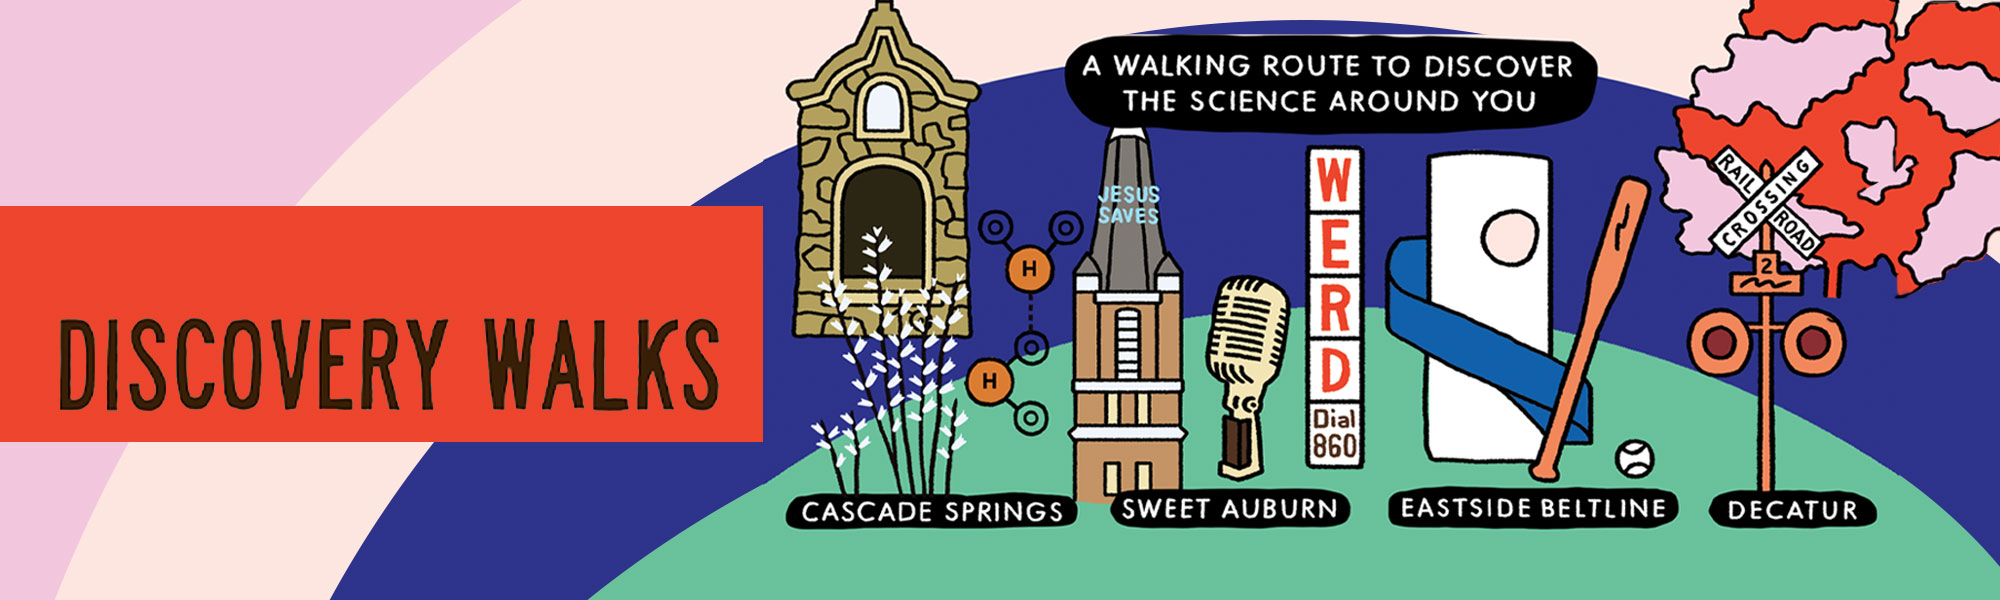 Discovery Walks: a walking route to discover the science around you.